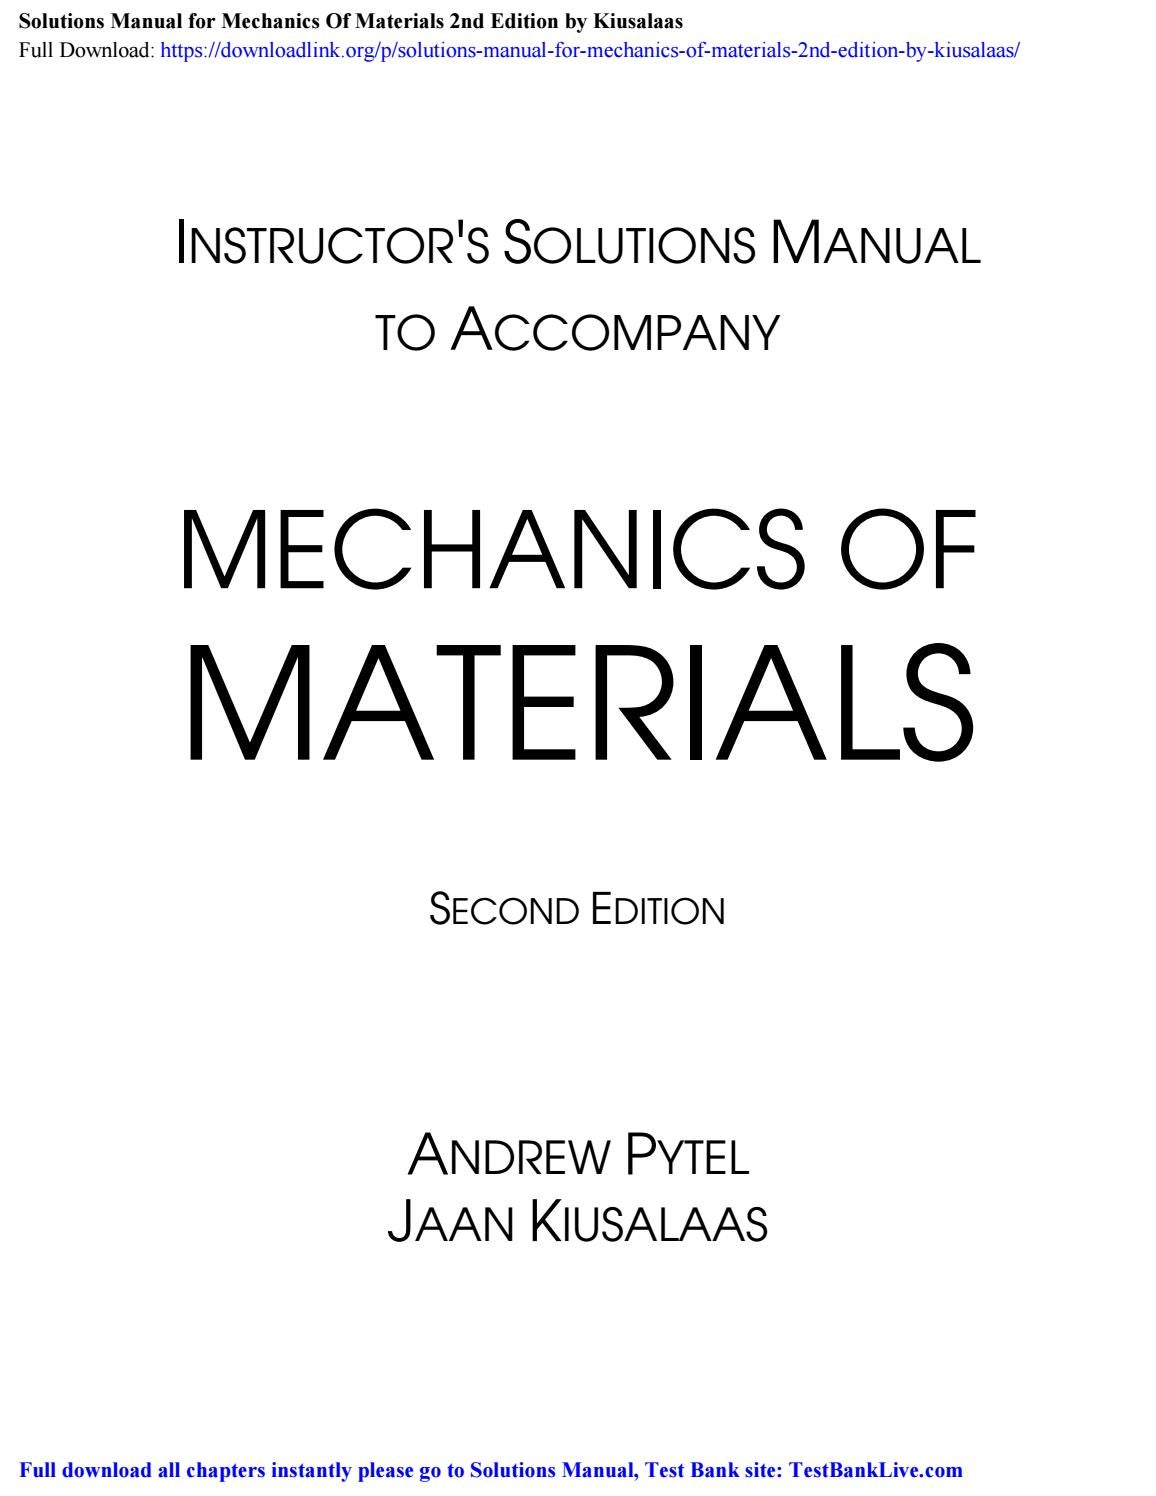 Solutions Manual For Mechanics Of Materials 2nd Edition By Kiusalaas By Nicole Issuu